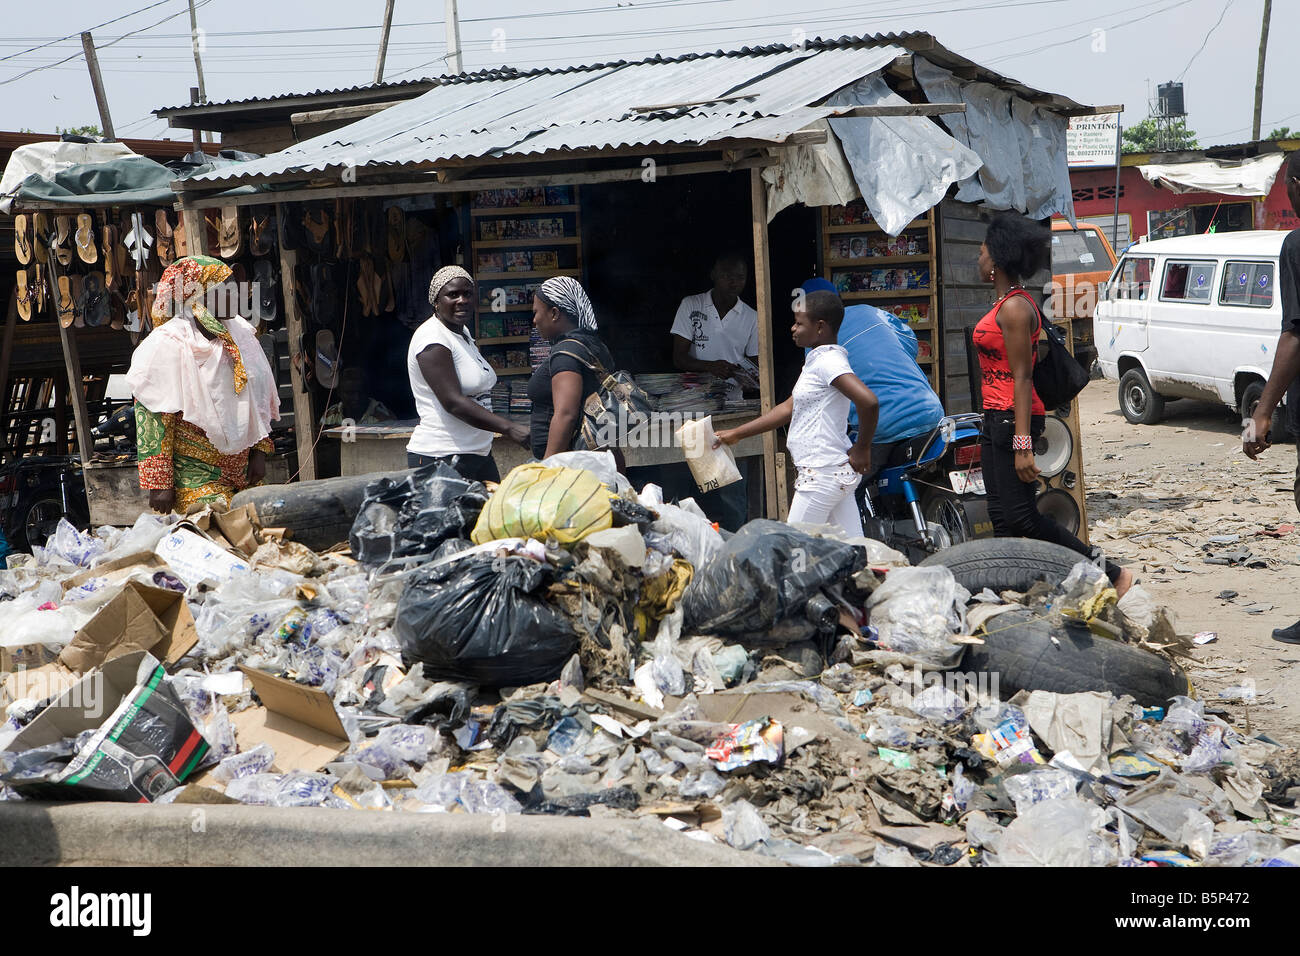 A crowd of people walk past a Nigerian market stall which has a rubbish tip in front - Stock Image